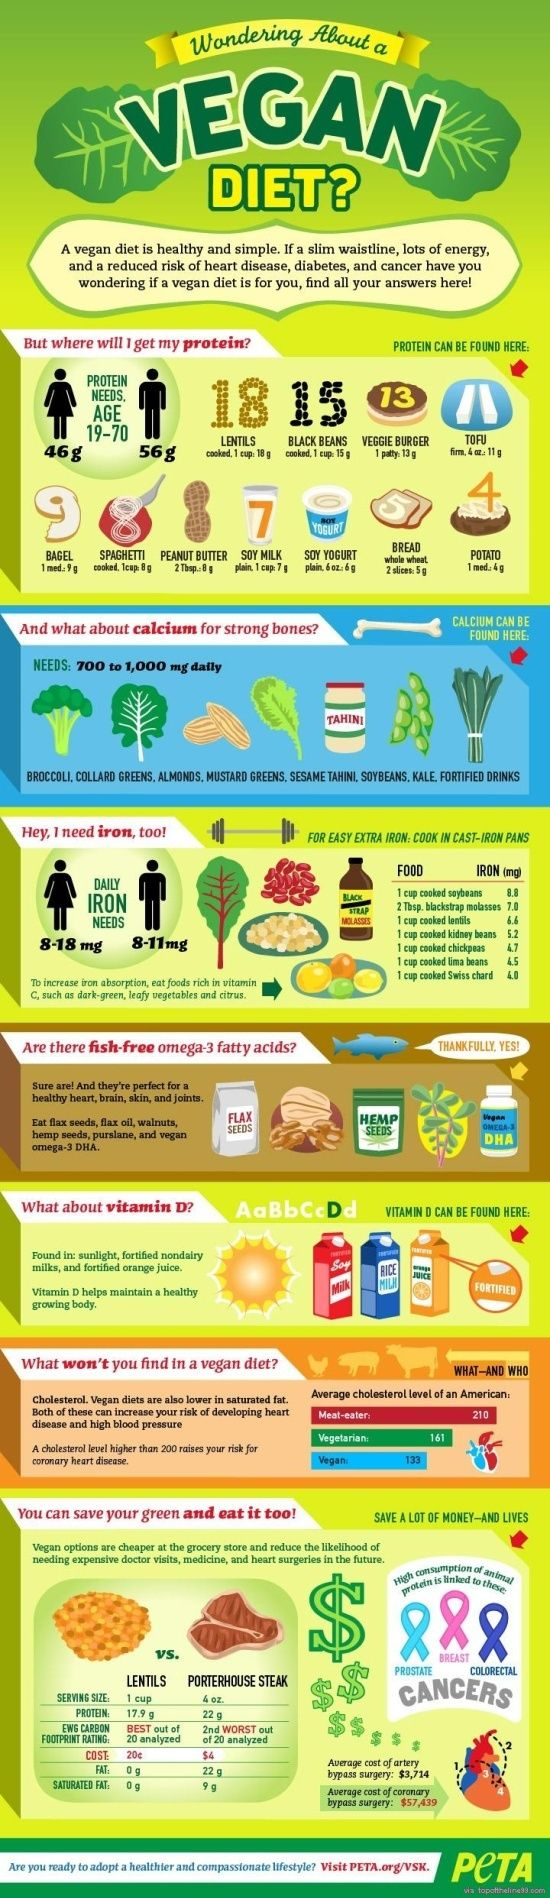 Vegan diet fundamentals!